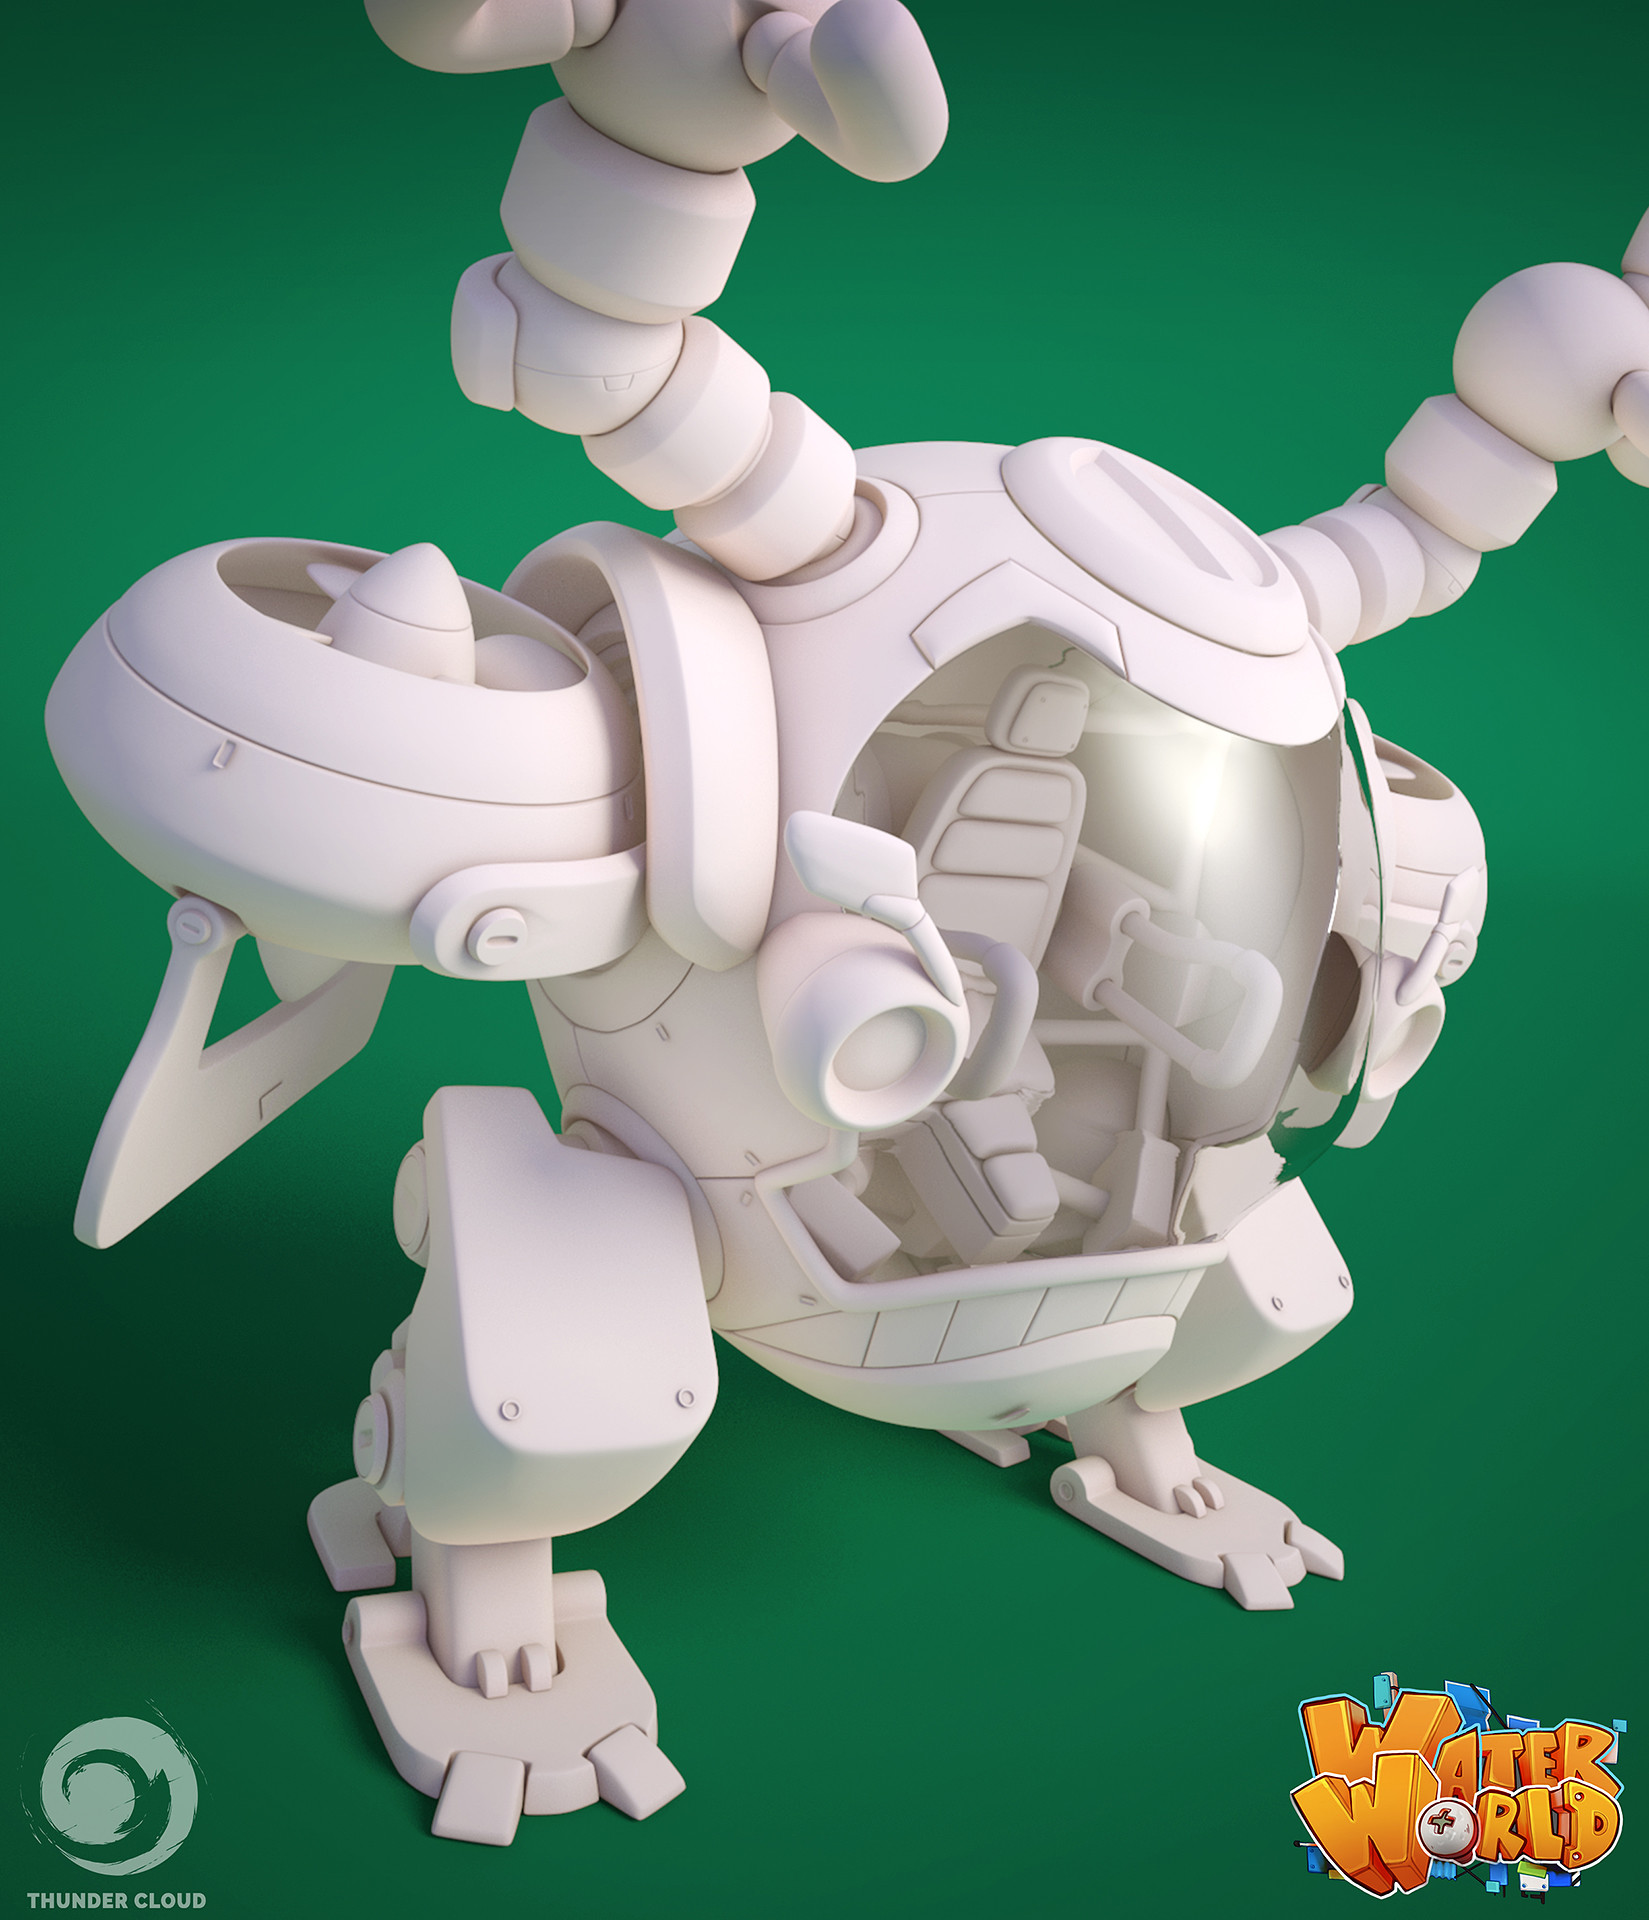 Thunder cloud barmmech hipoly supportimage closeup3 min